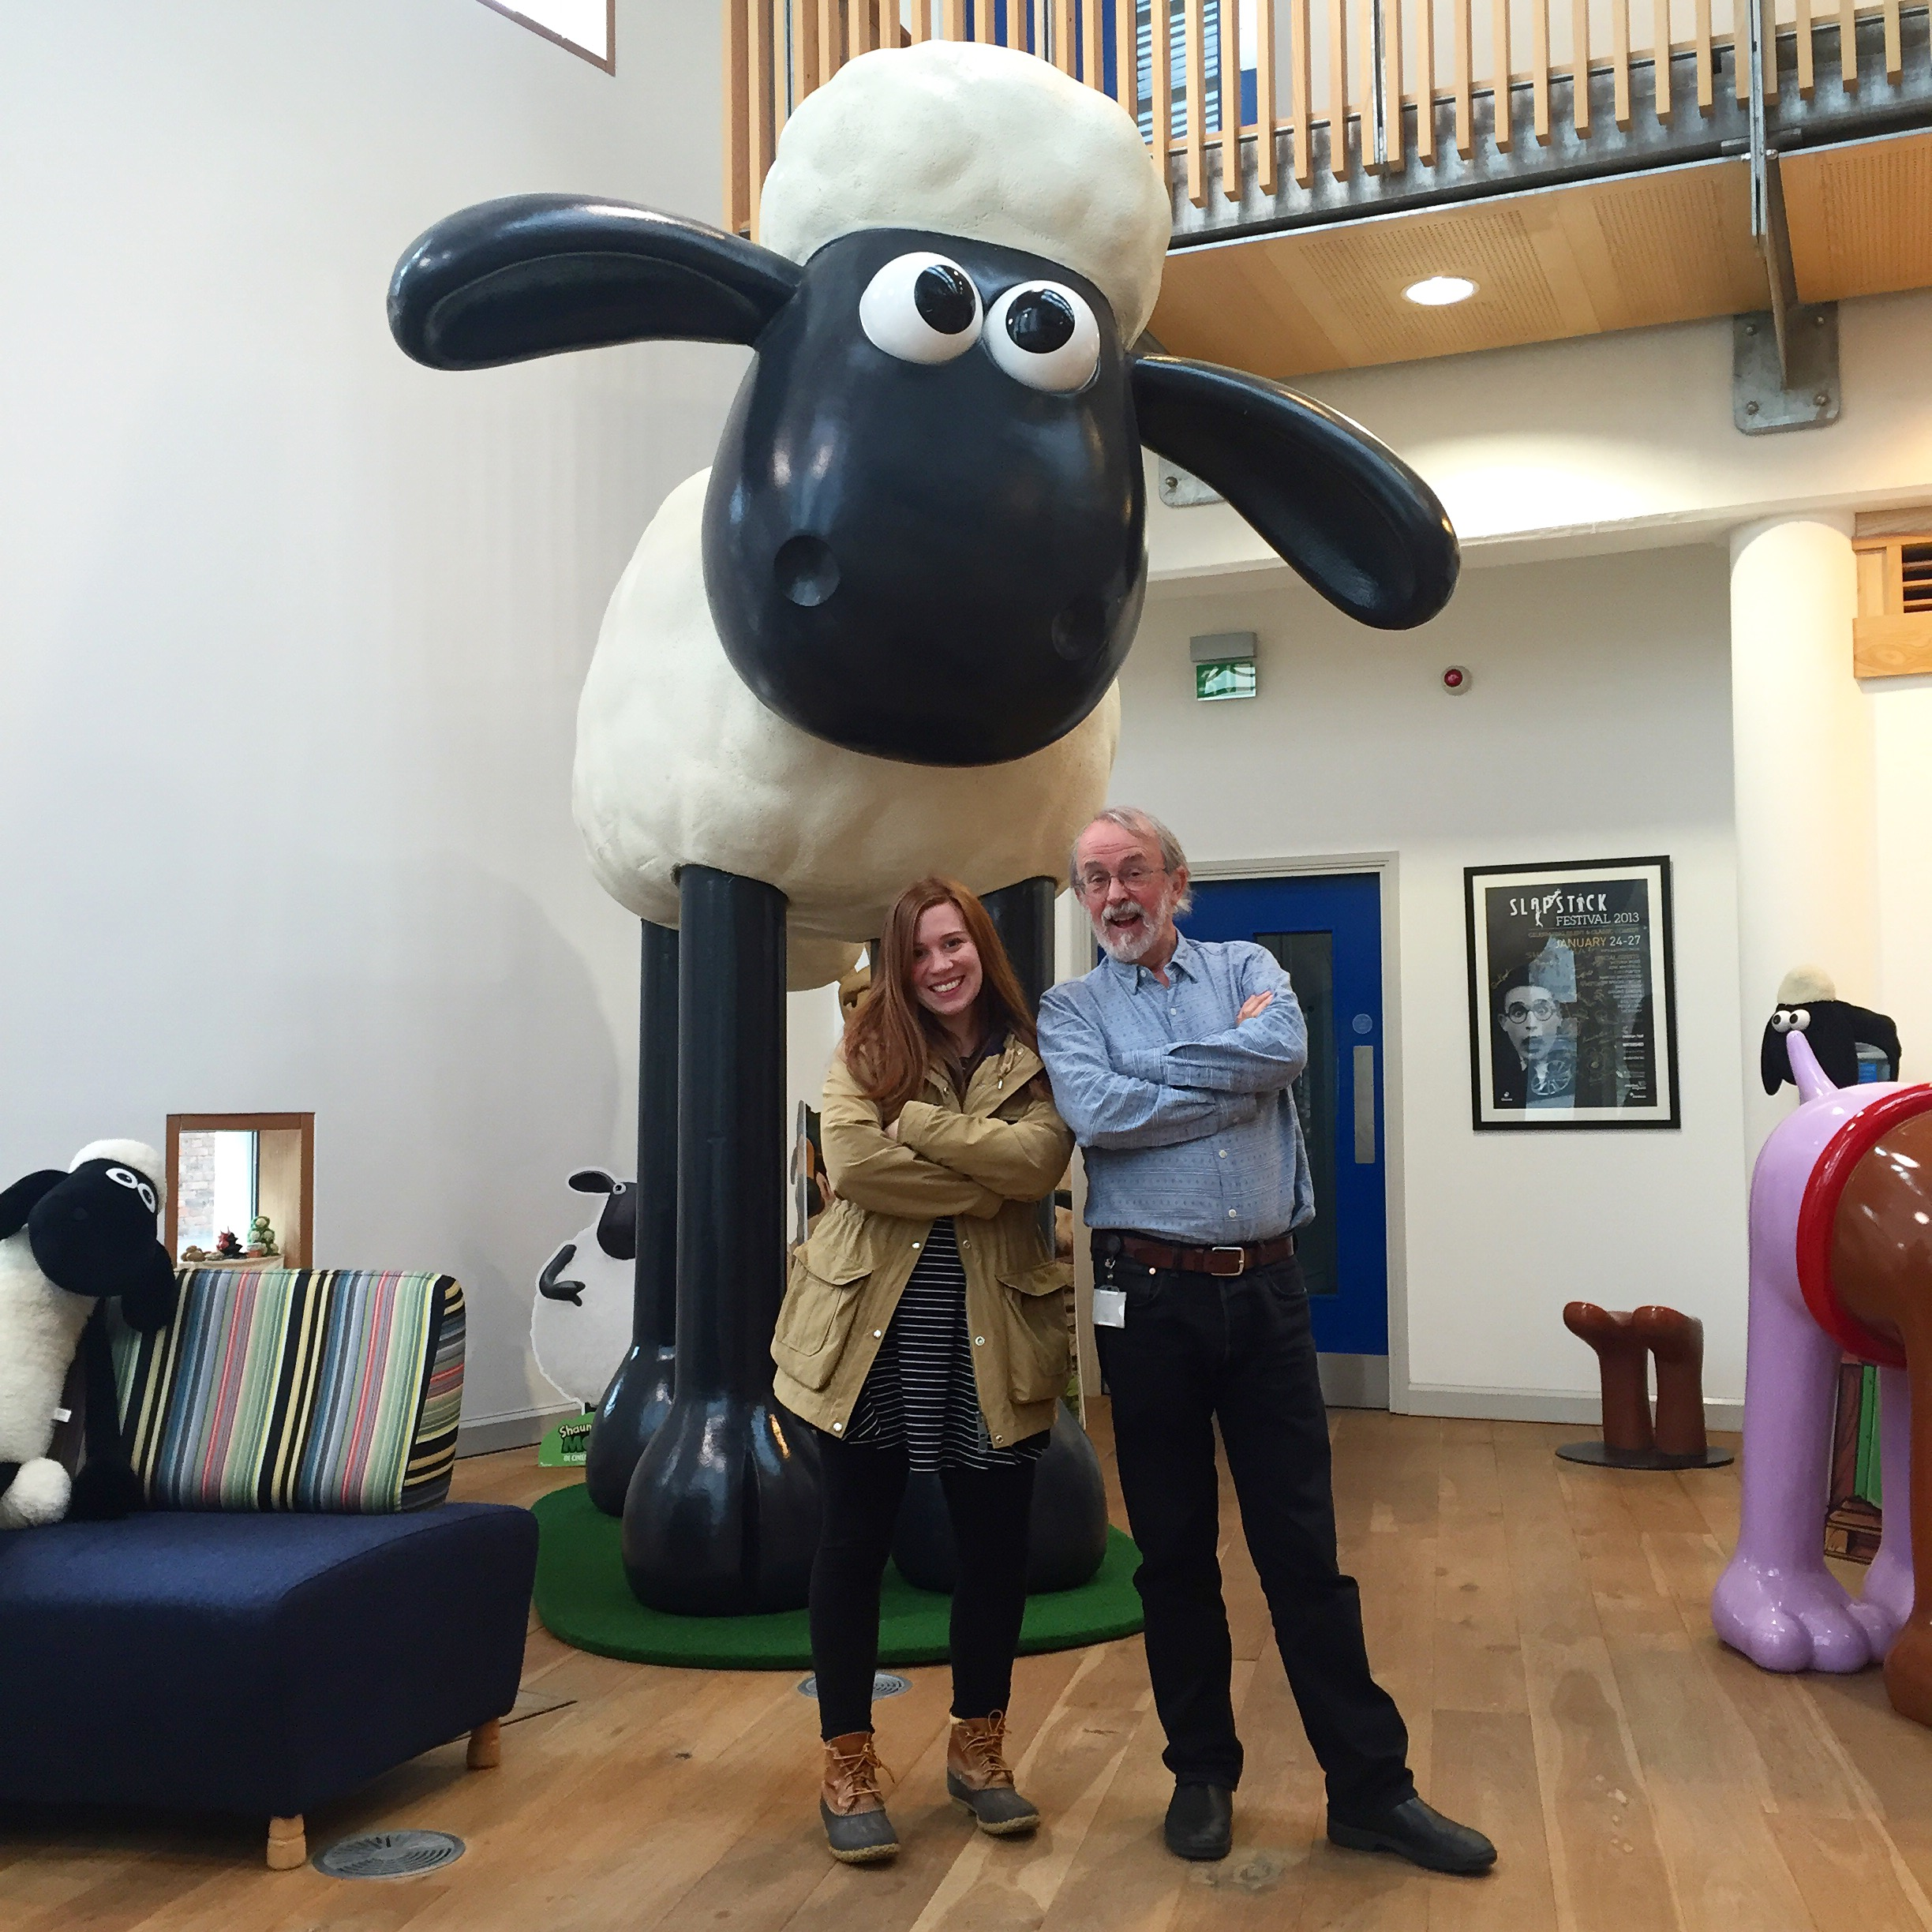 I happened to be attending a wedding in Bristol in October, and got the chance to check out Aardman Animation by the one and only Peter Lord!!! What an absolute treat. Also giving a shout out to Nicky Instan! Thank you!